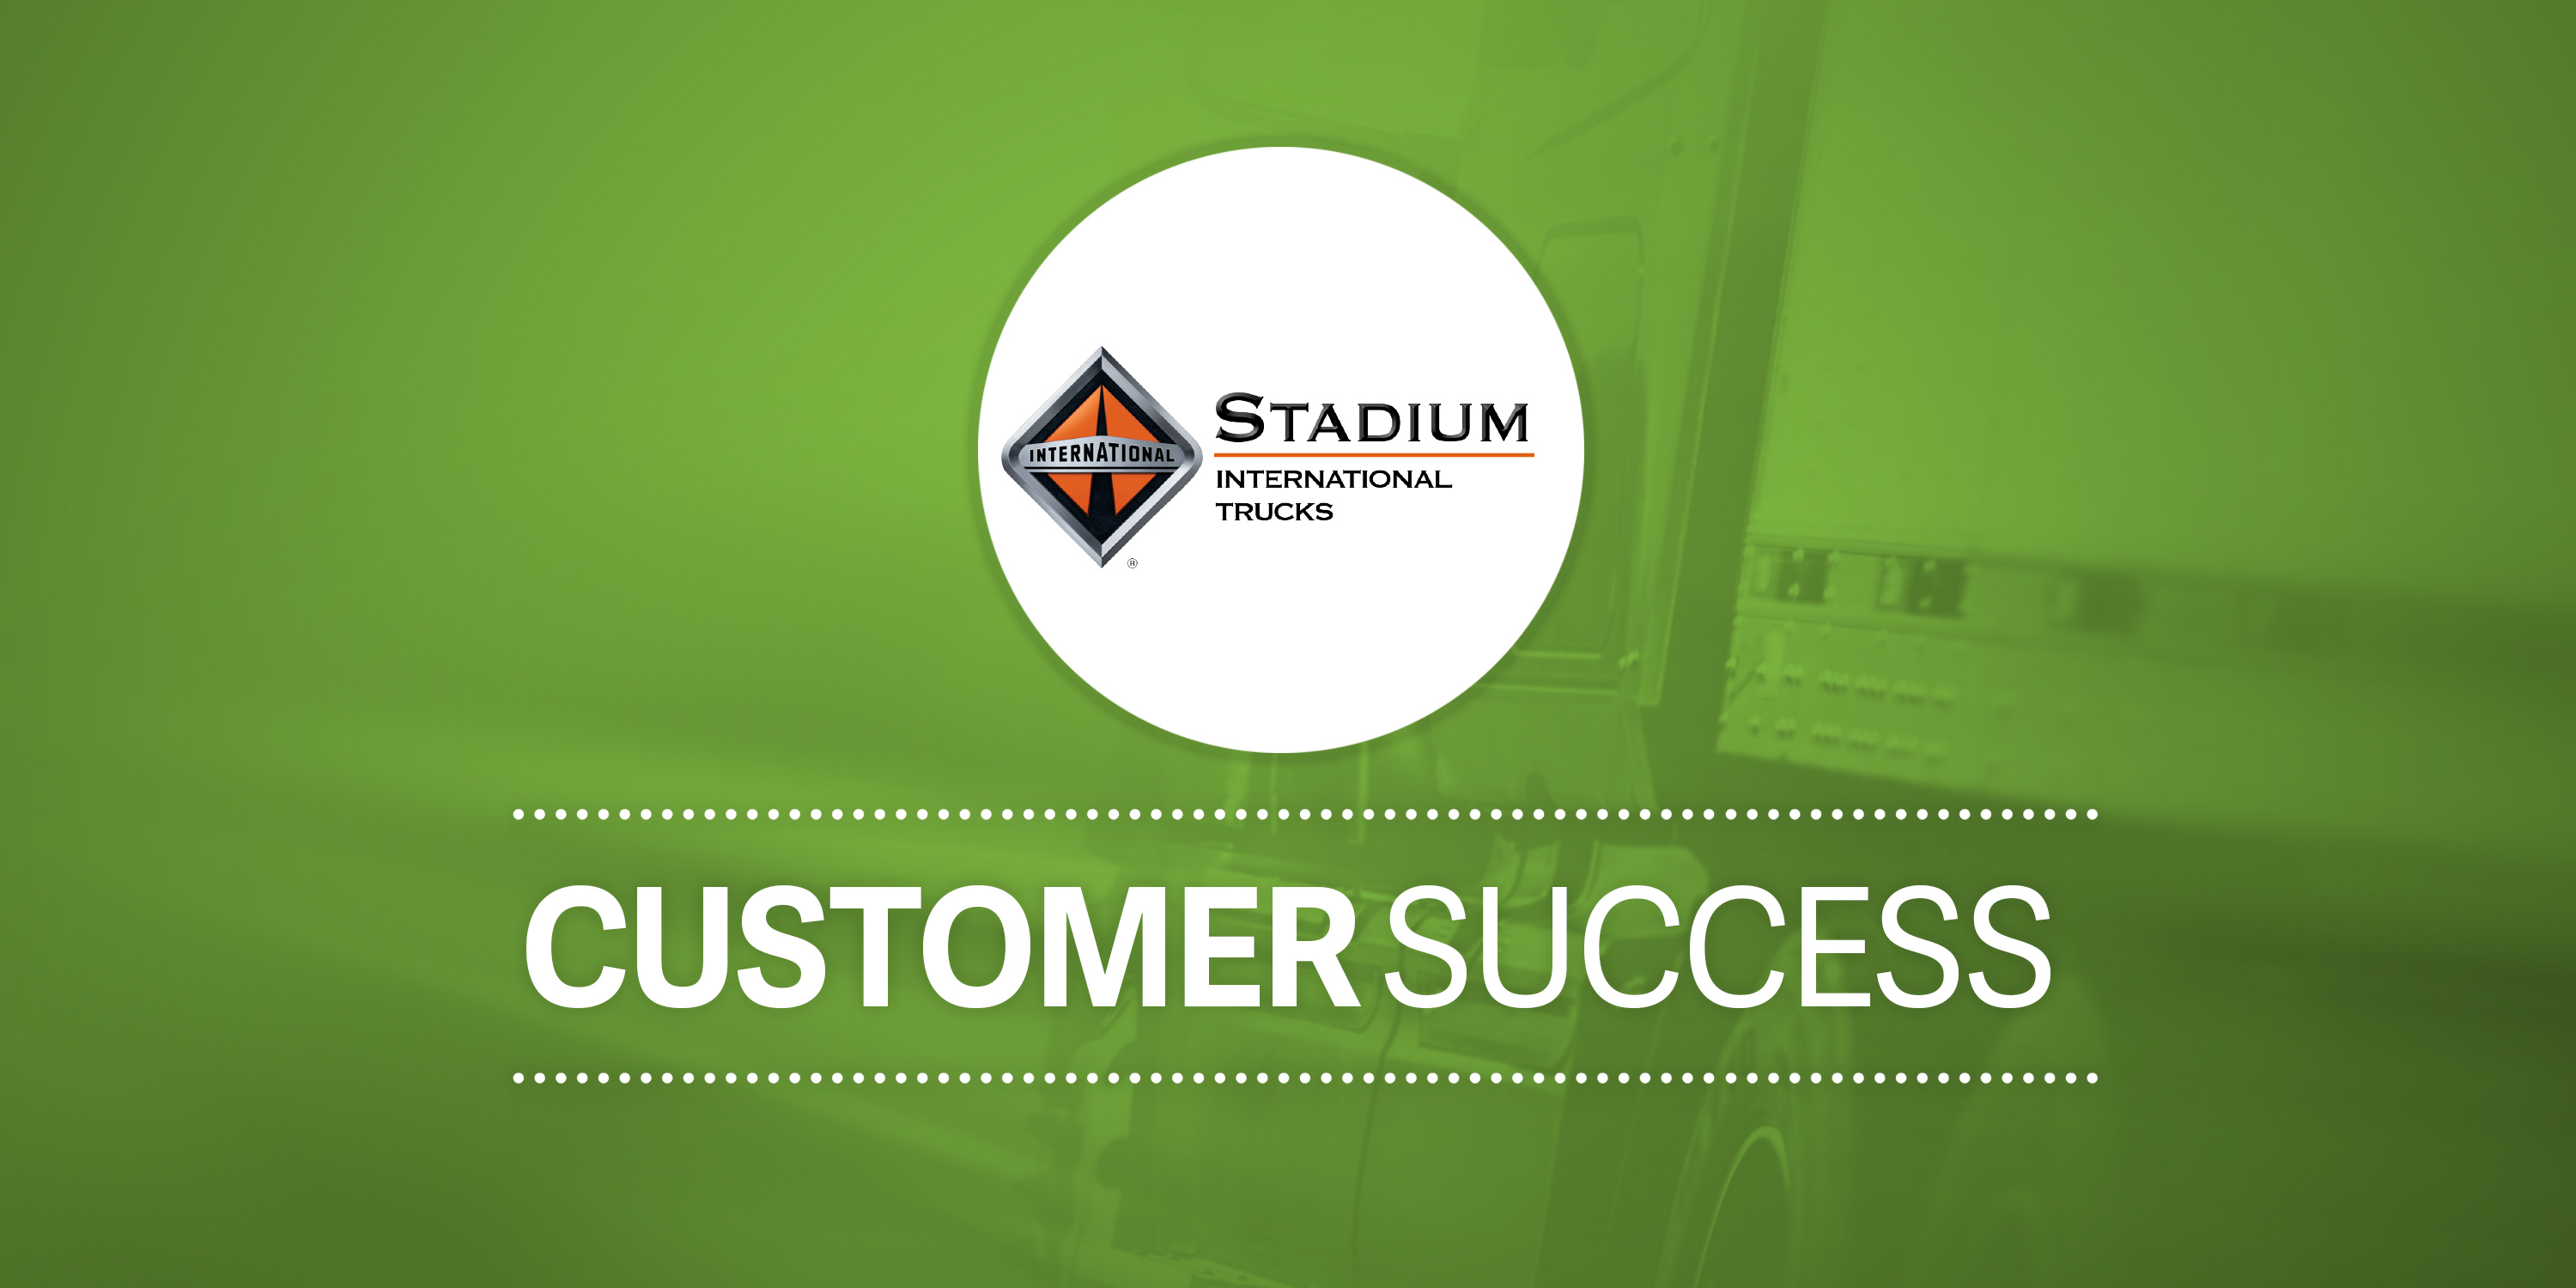 Case Study: Stadium International